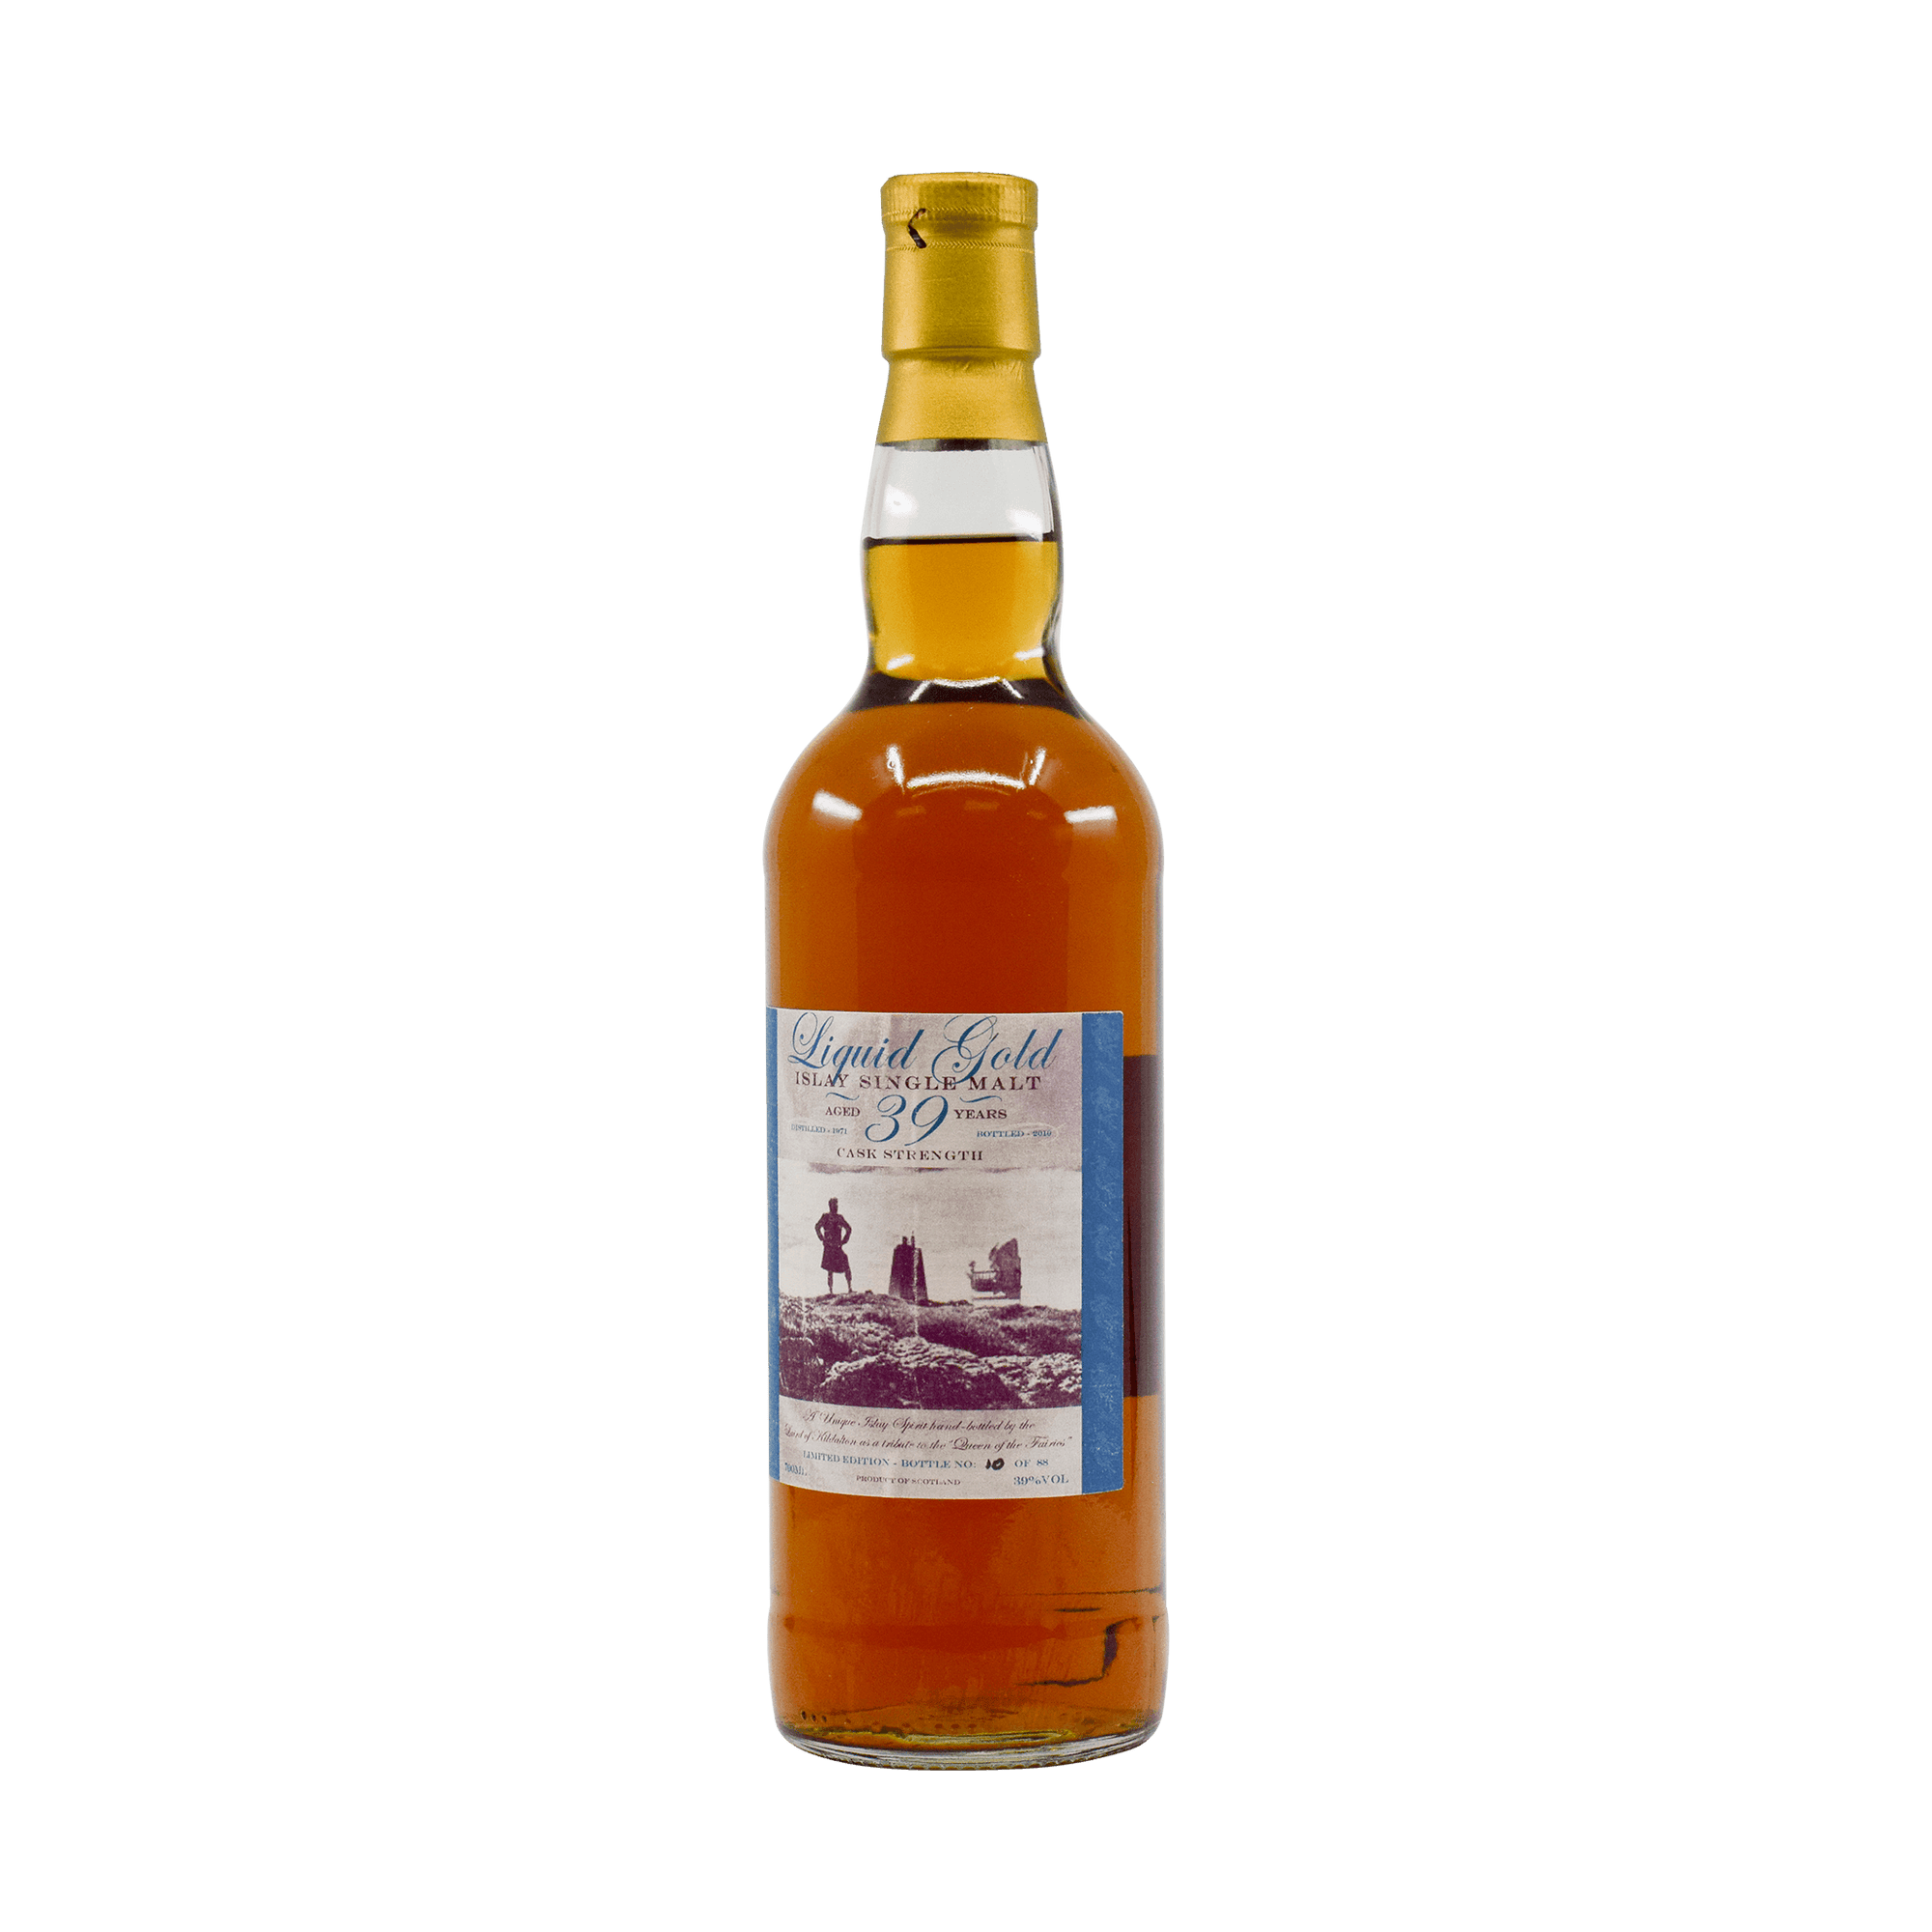 Bruichladdich 1971 39 Year Old 'Liquid Gold' 39.00% 70cl